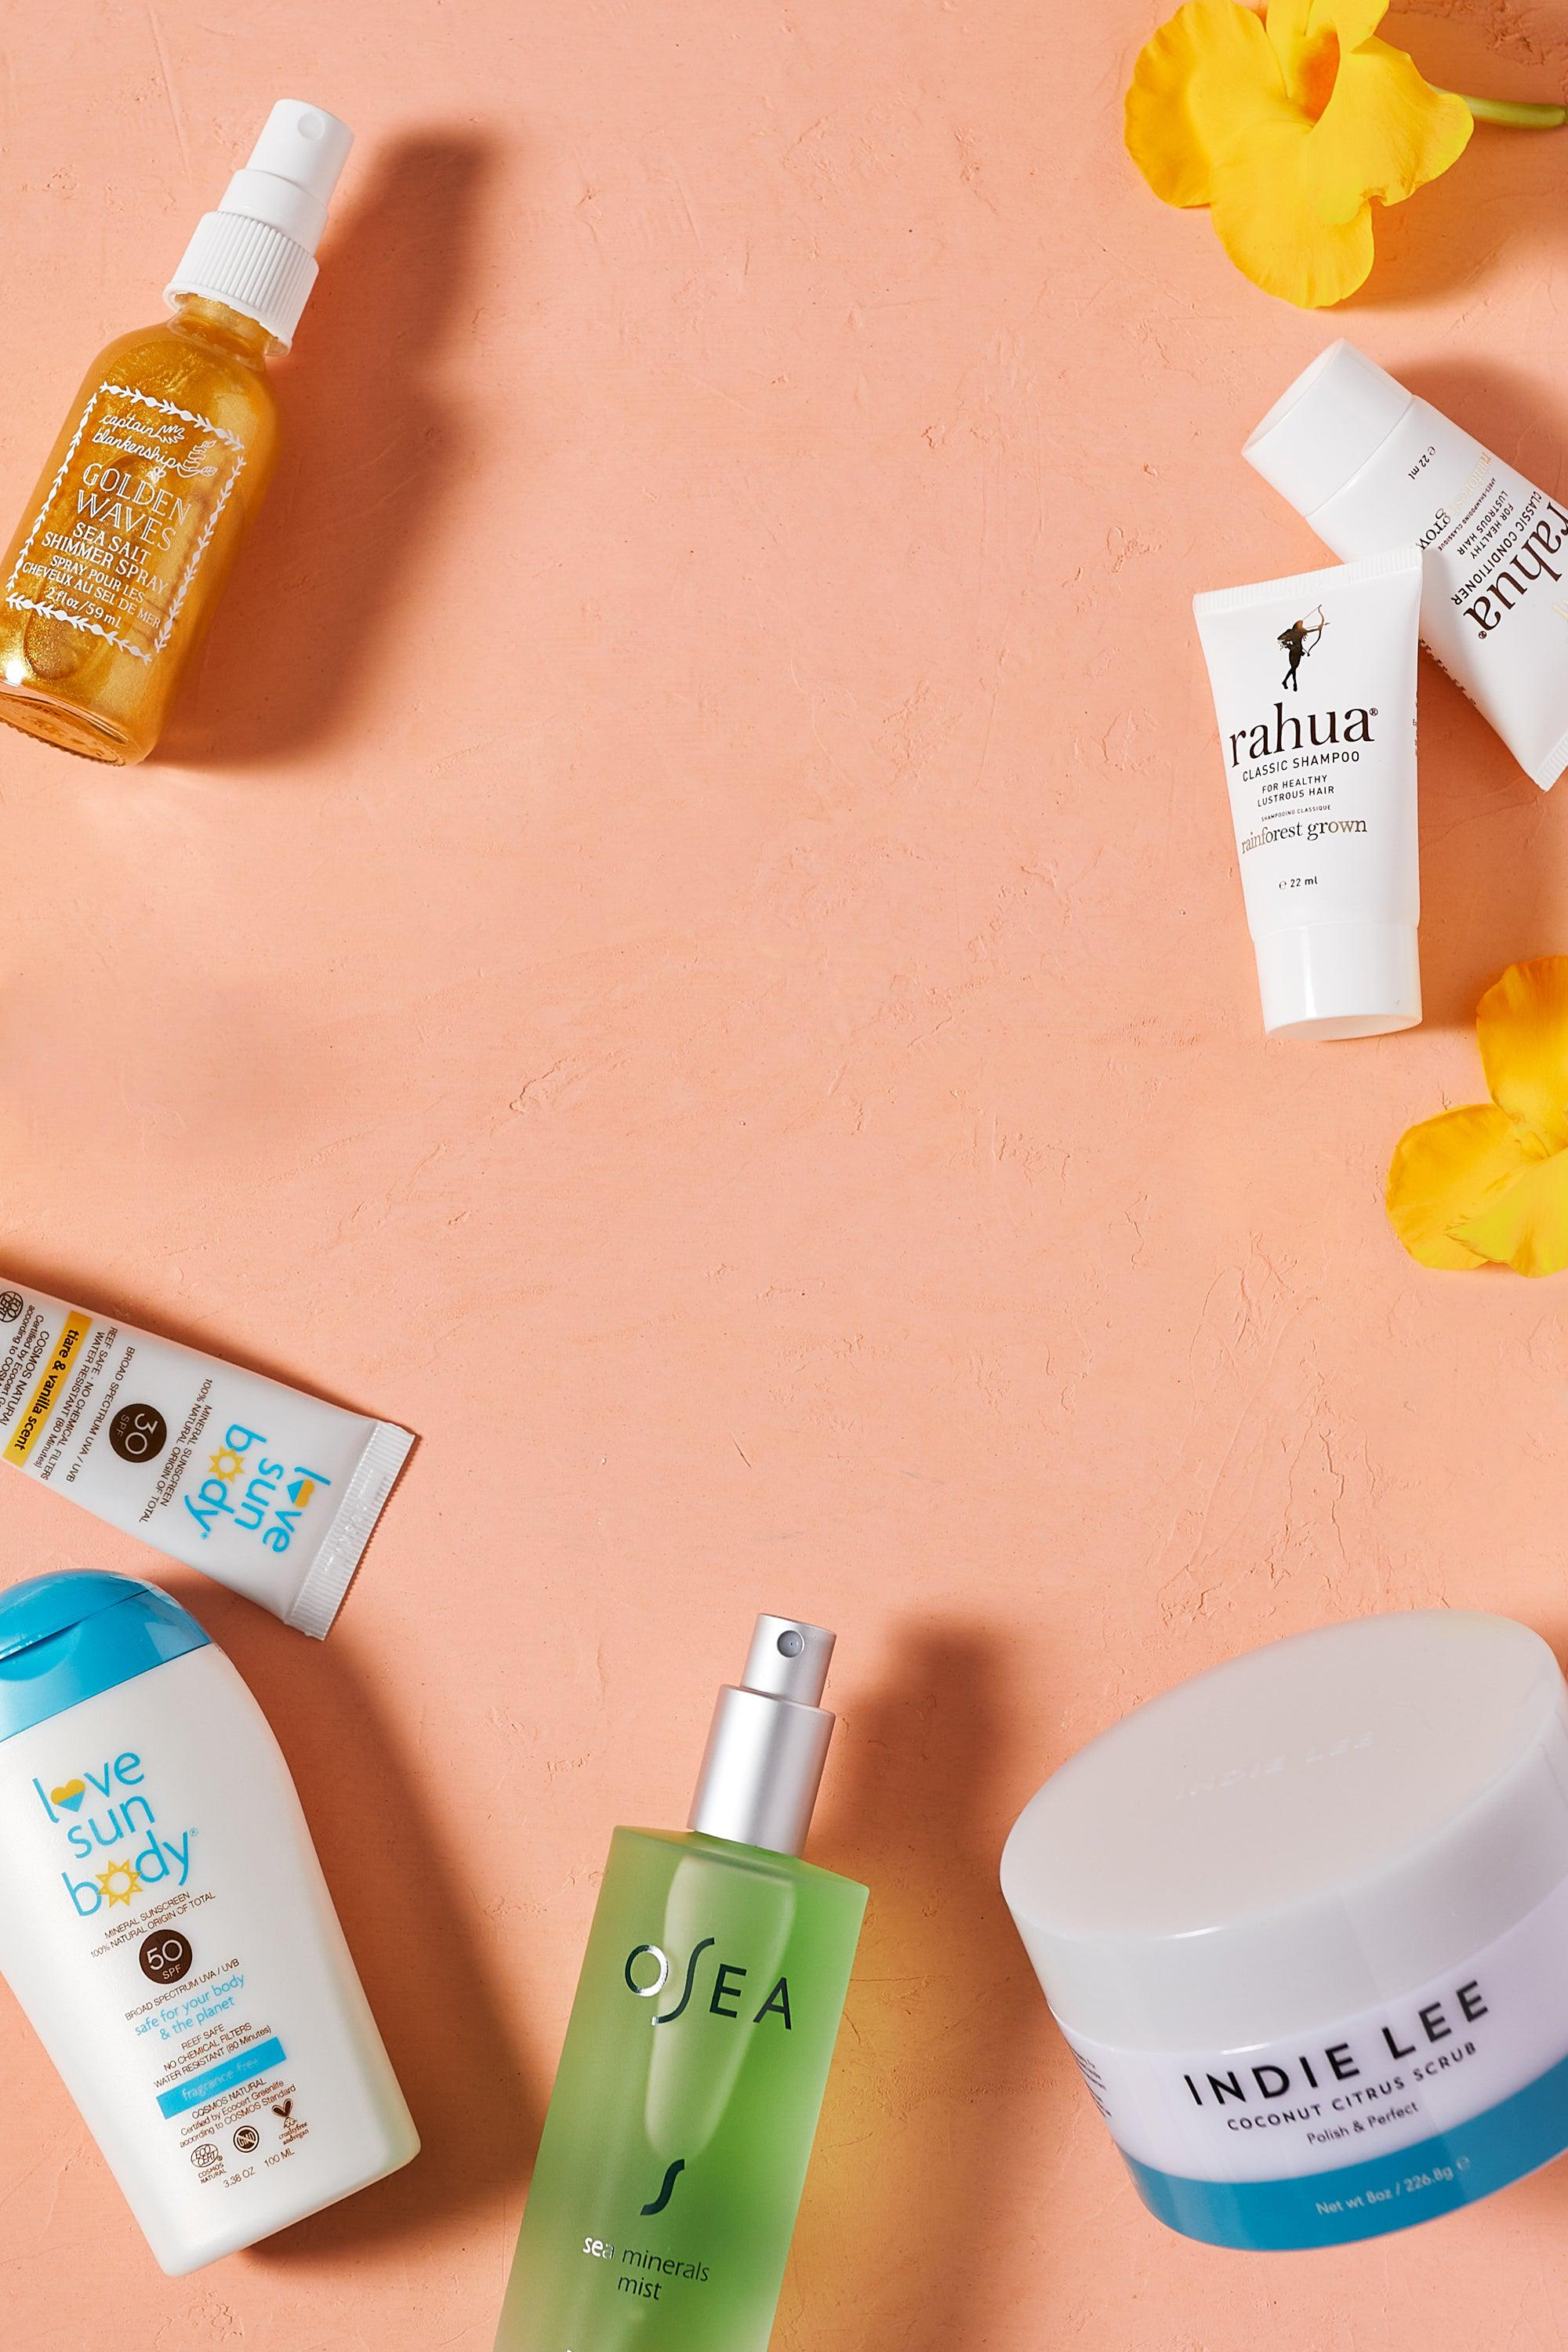 The August Detox Box featuring Indie Lee Body Scrub, Love Sun Body Sunscreen, OSEA Sea Minerals Mist, Rahua Classic Shampoo and Conditioner